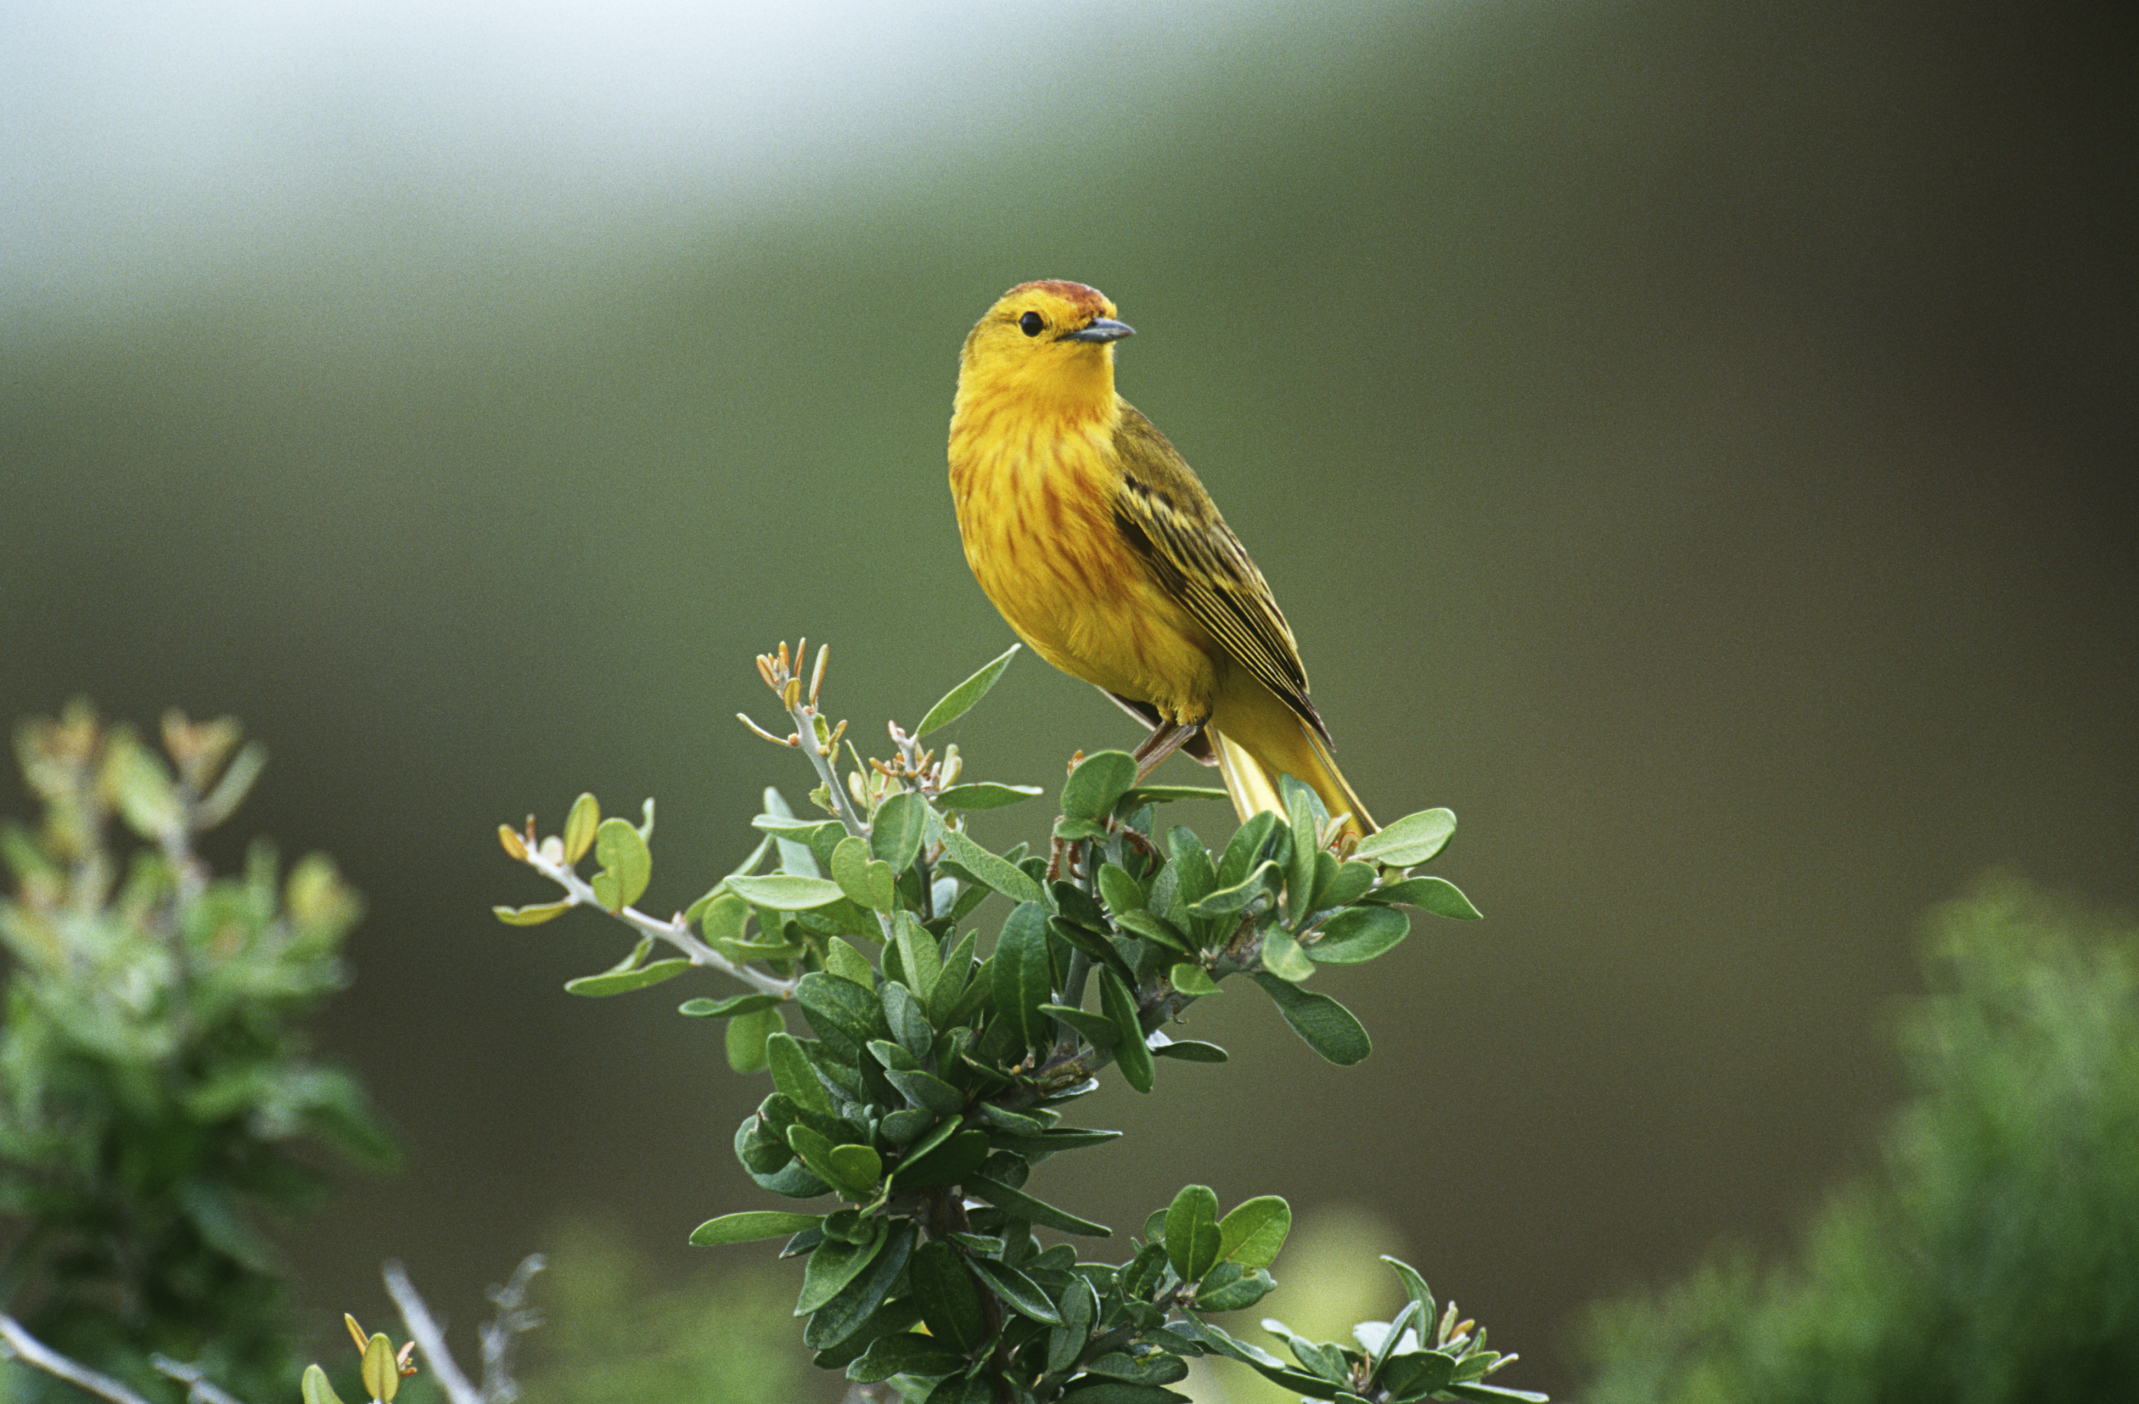 Yellow bird perched on a tree branch